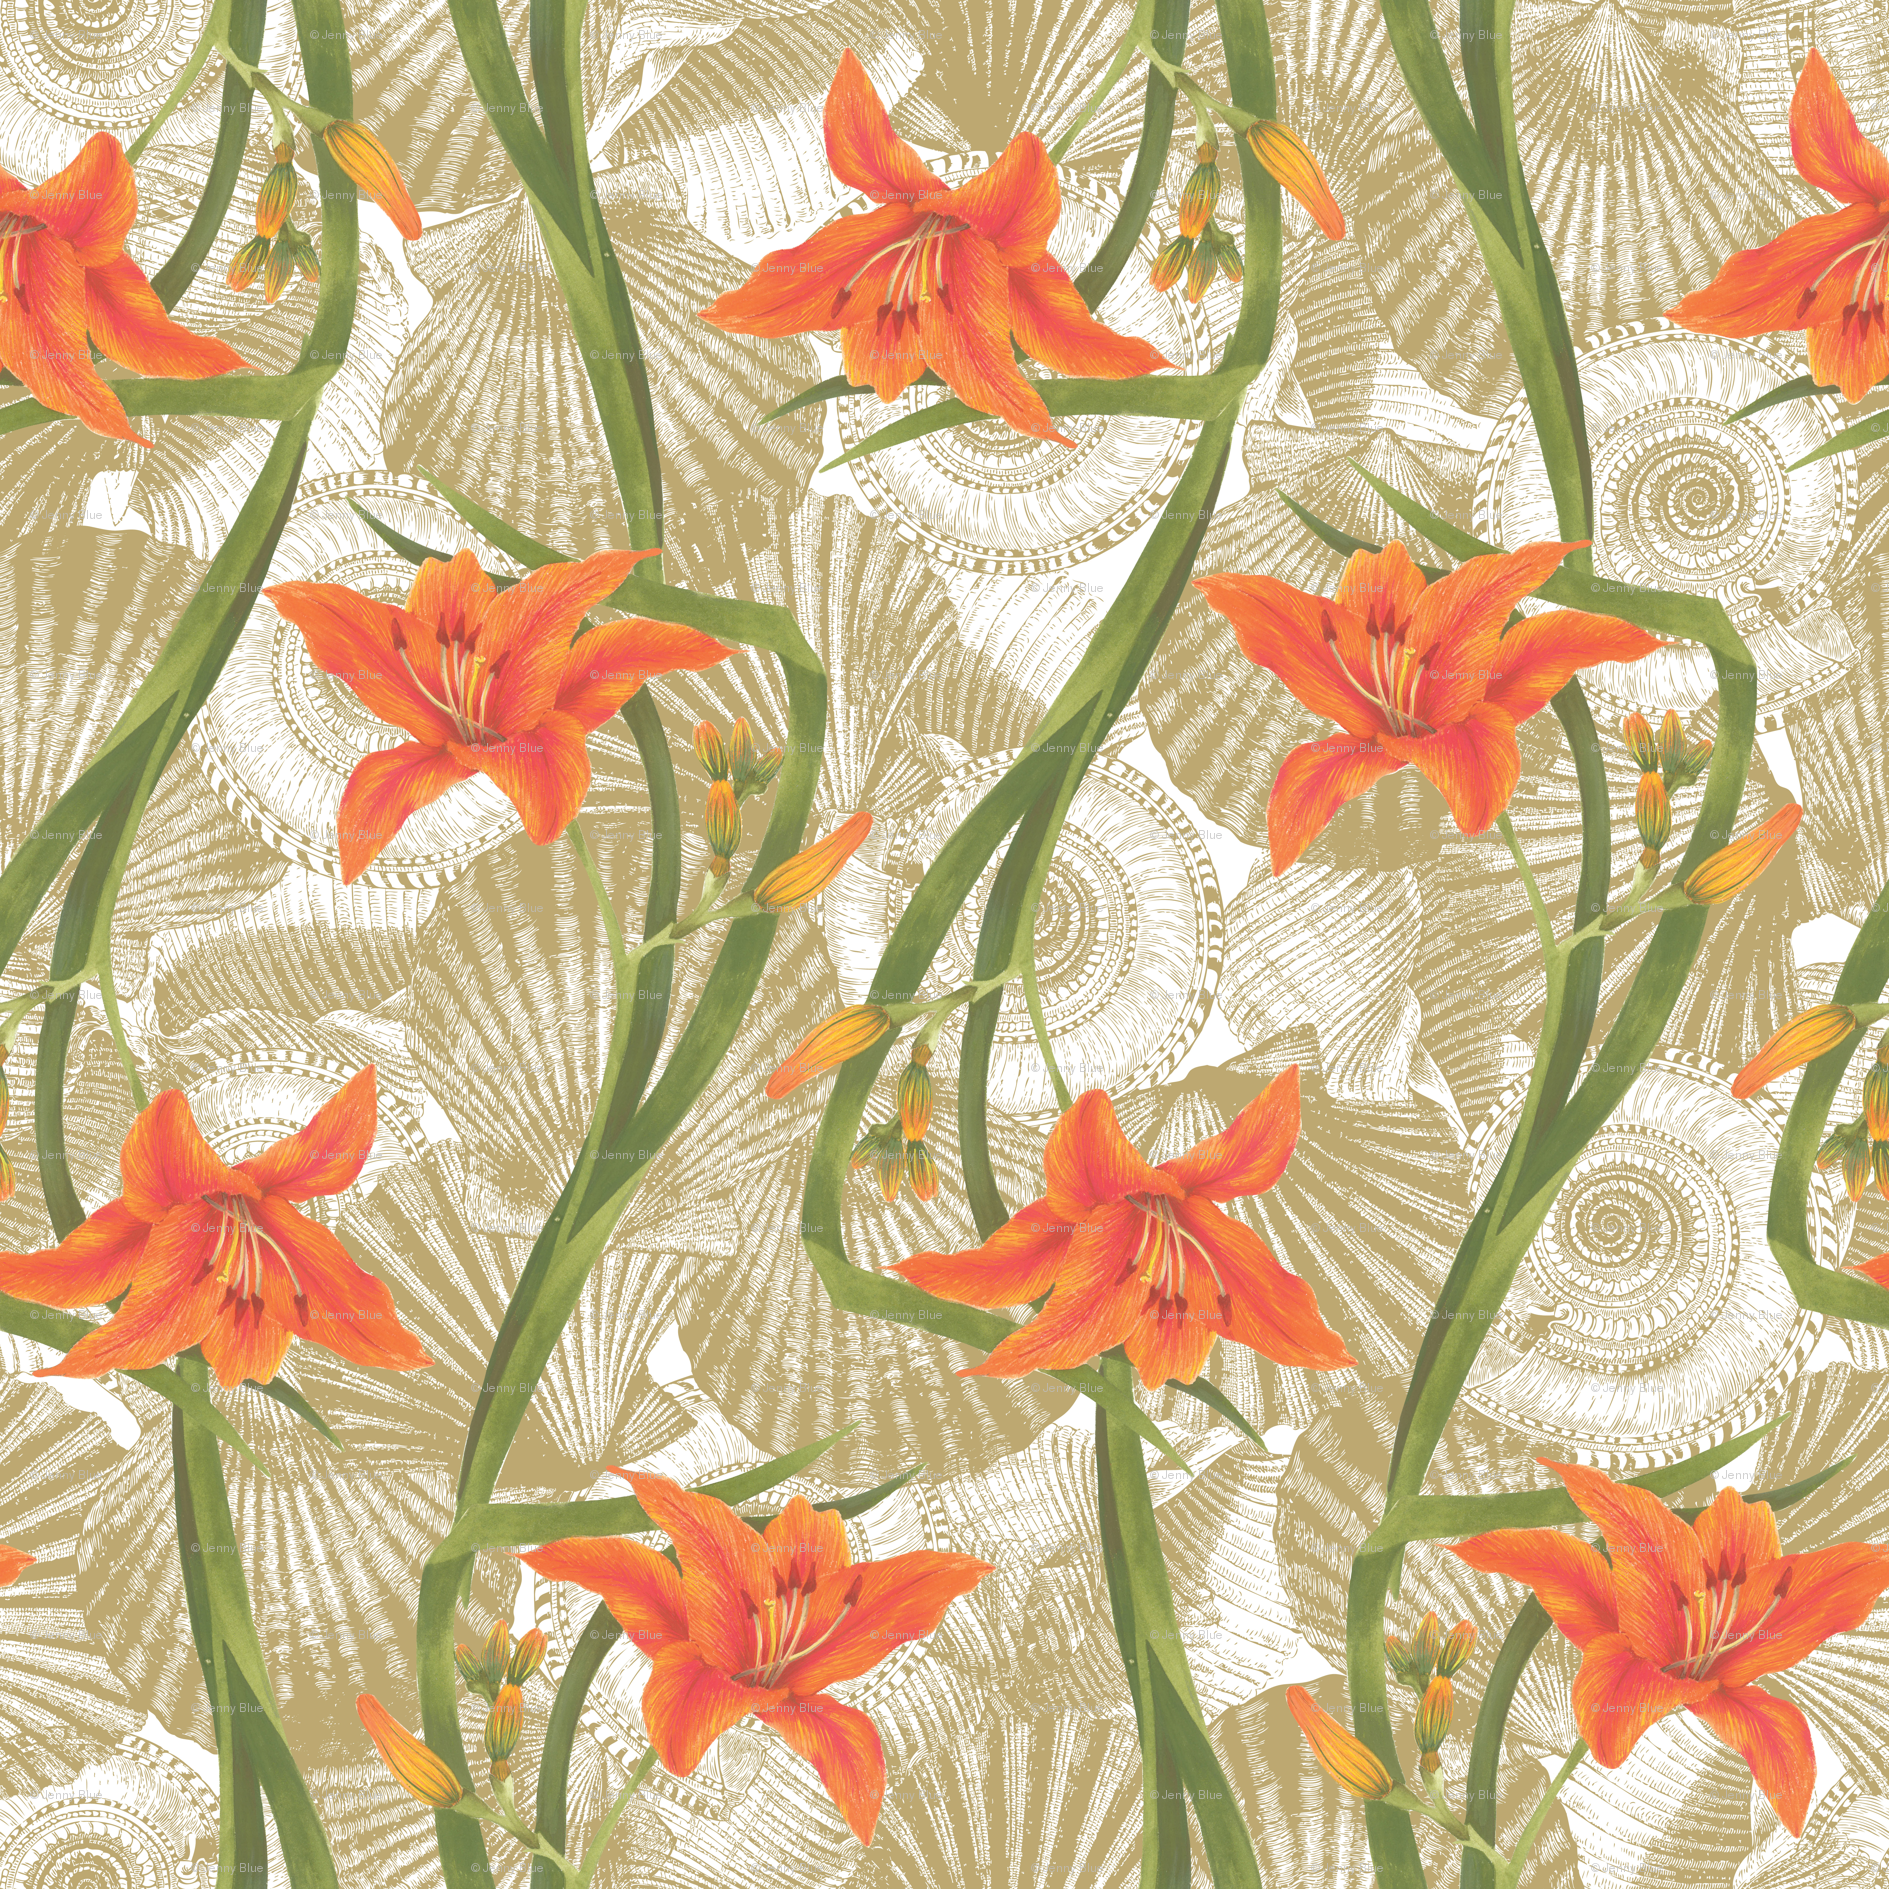 Tiger Lily Fabric Cosecreative Spoonflower